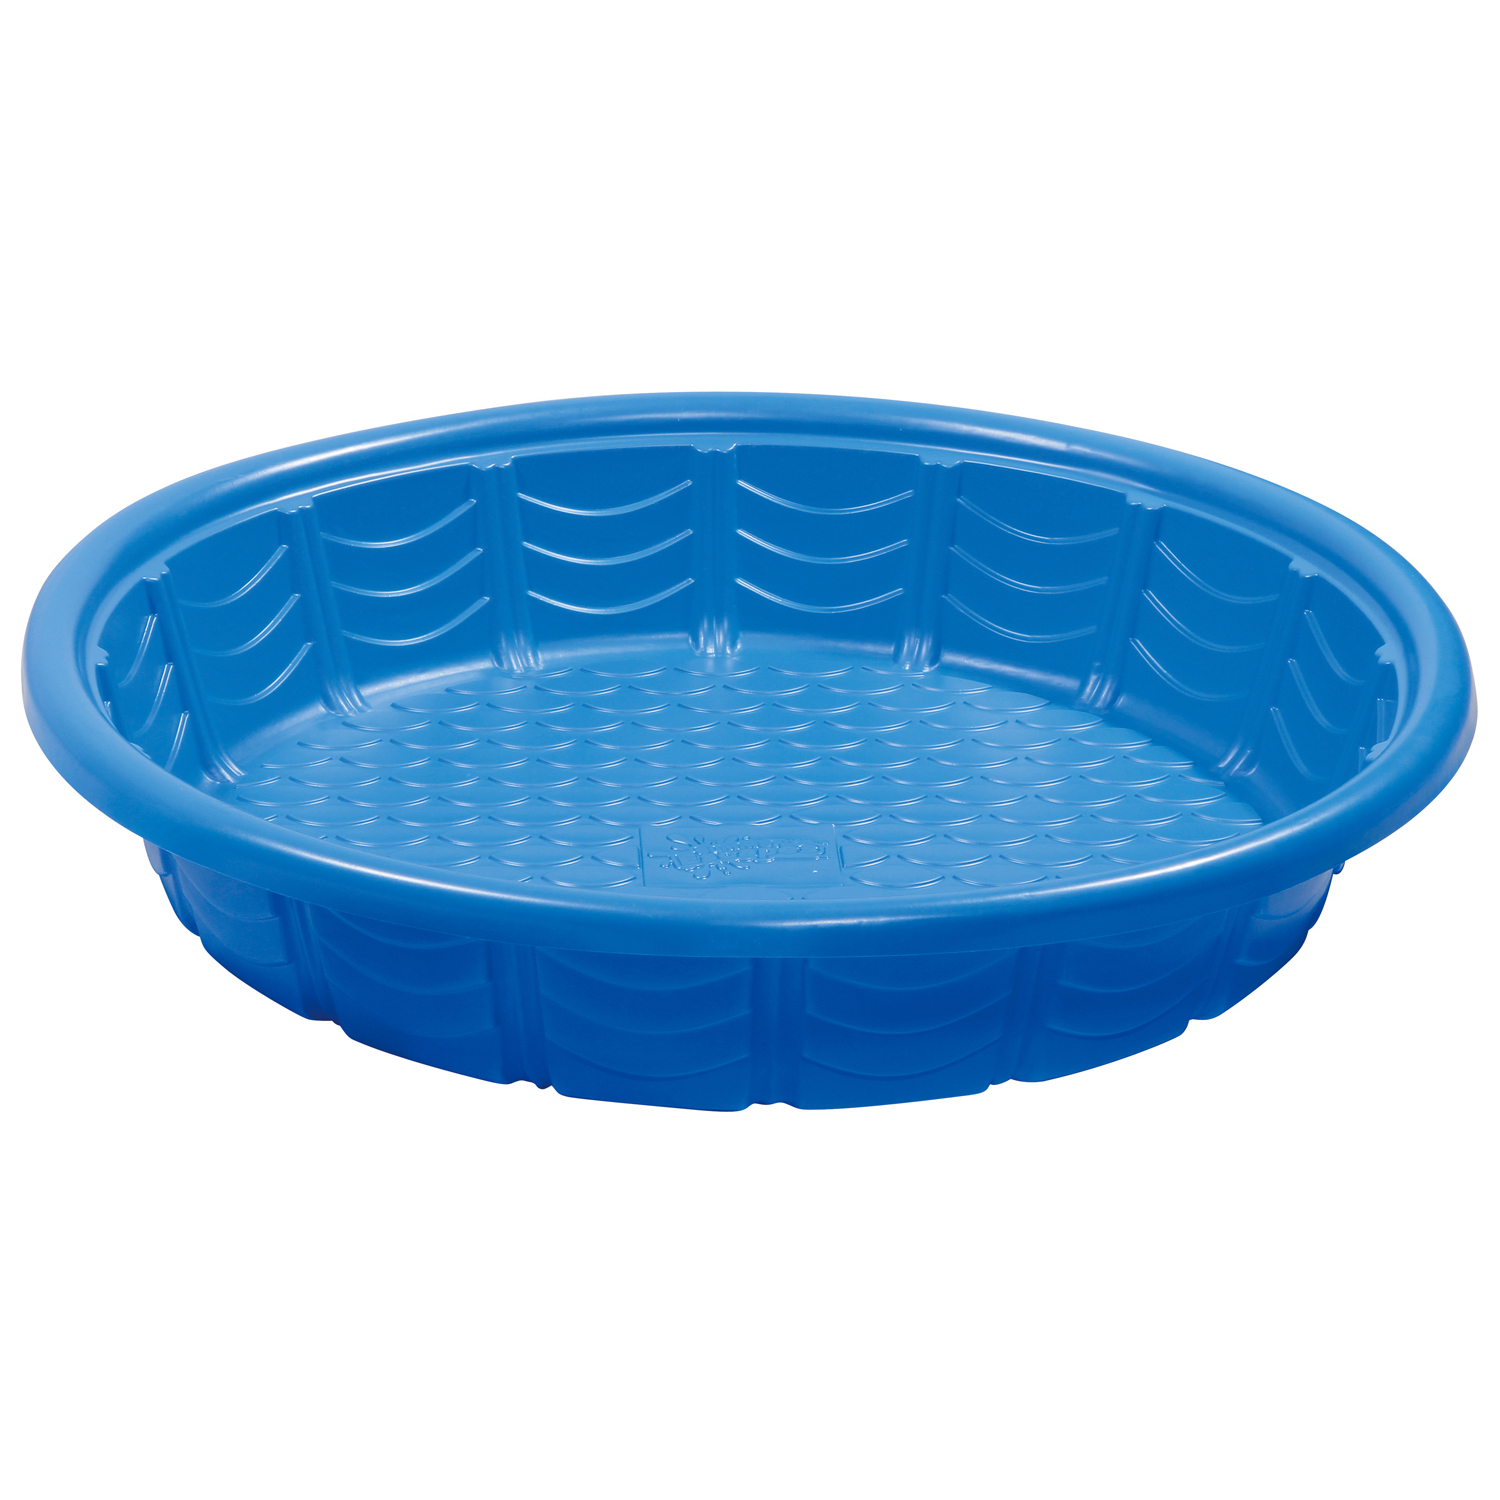 Pools & Accessories at Ace Hardware